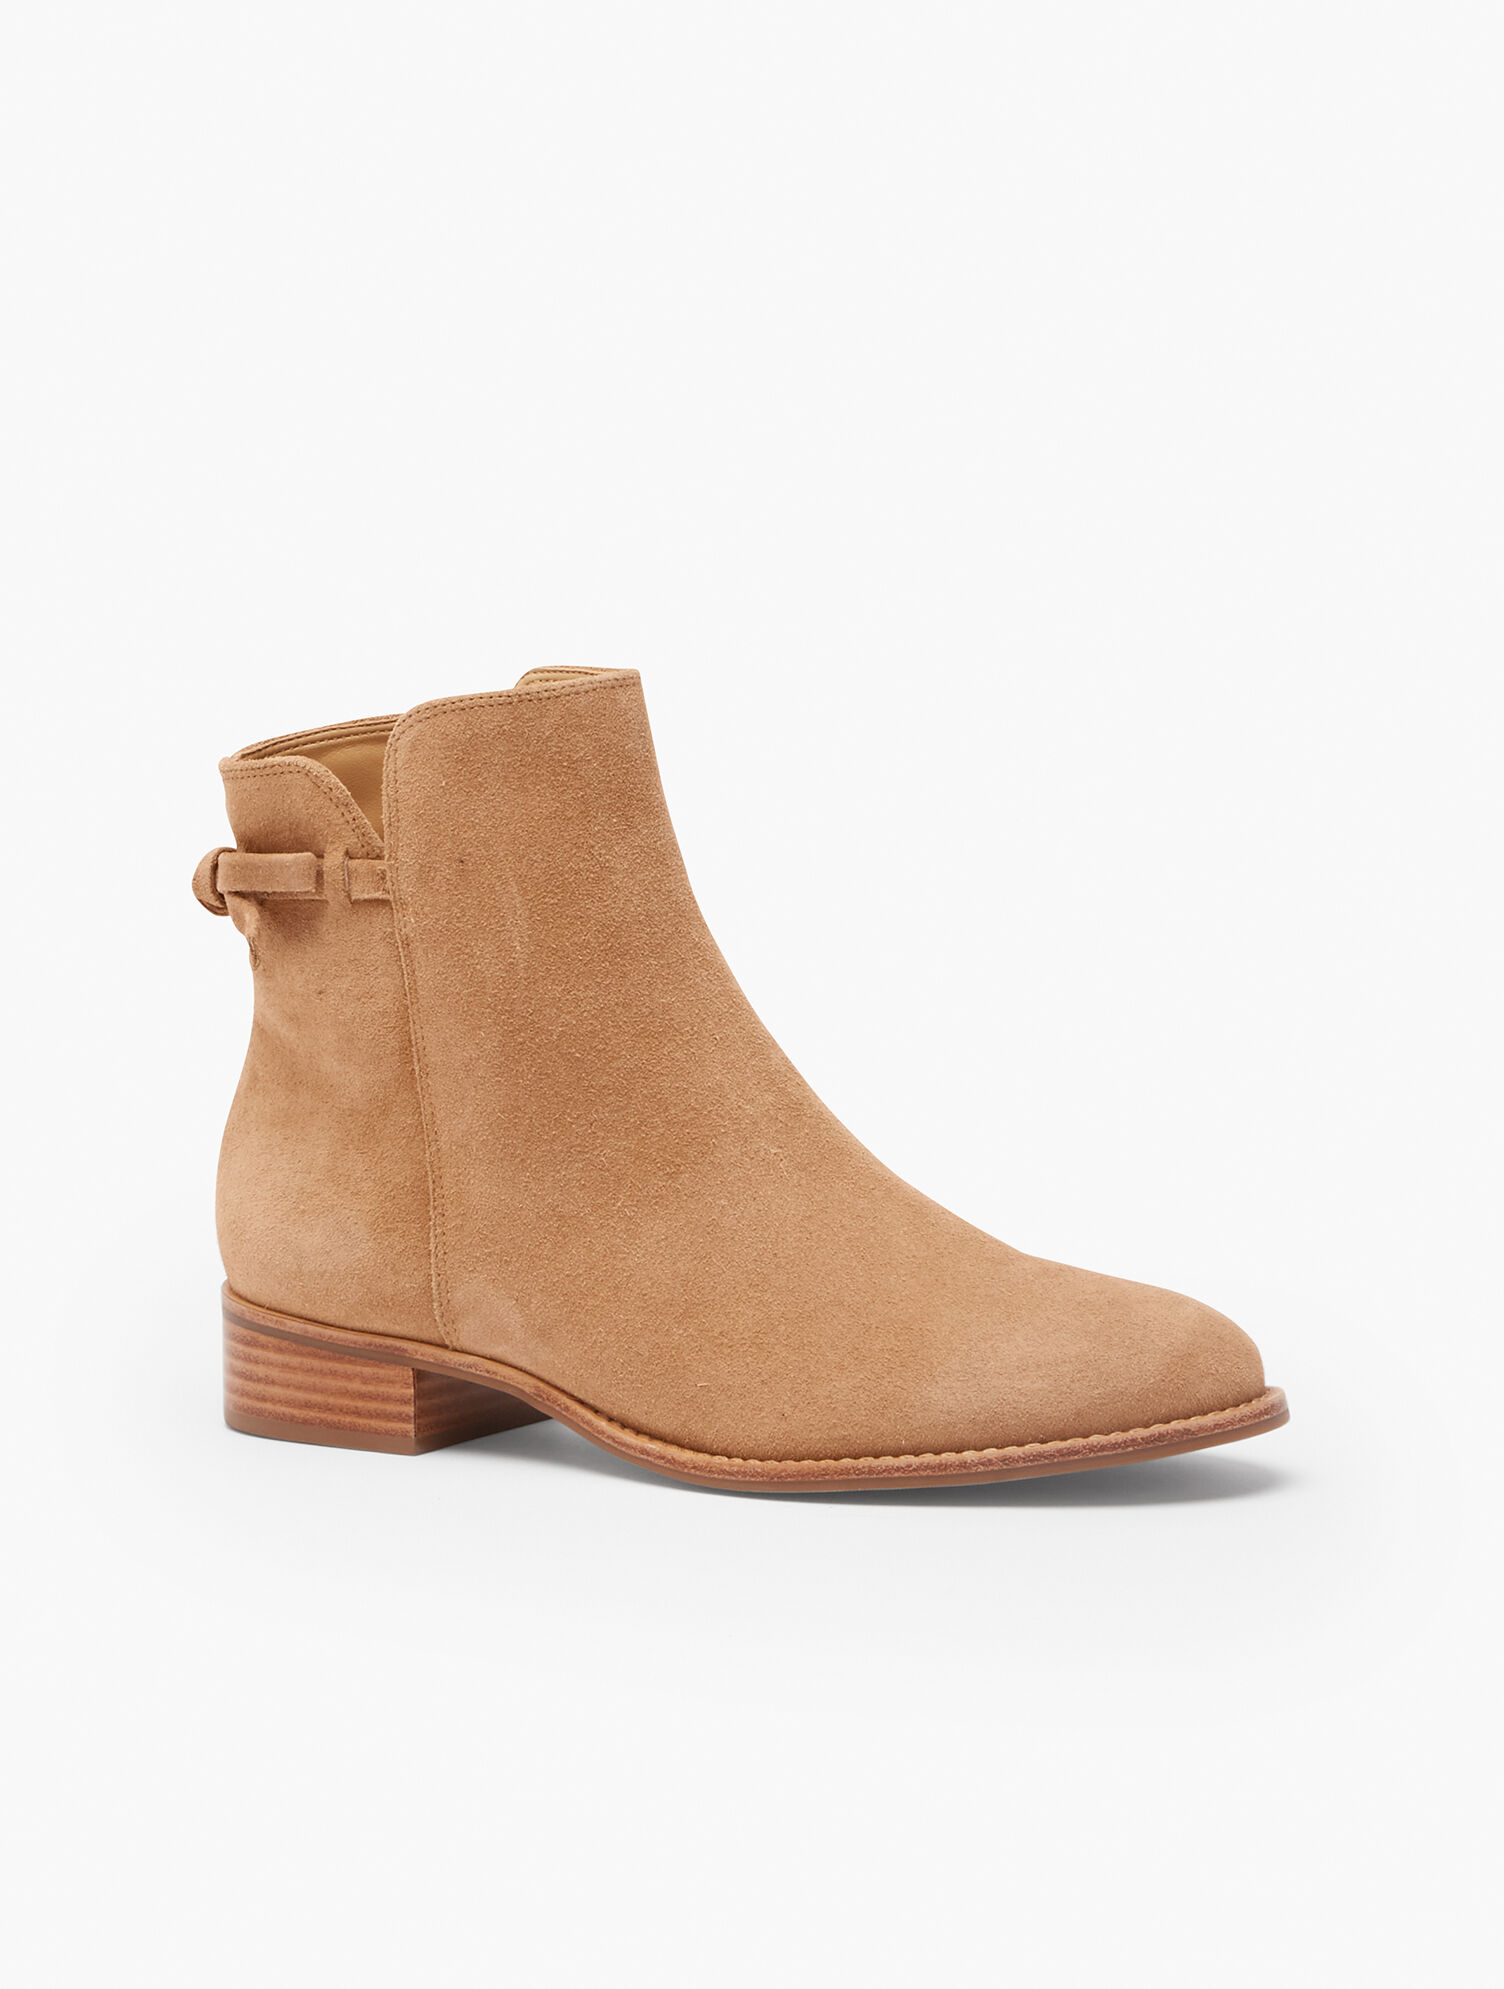 Tish Tie-Detail Ankle Boots - Suede